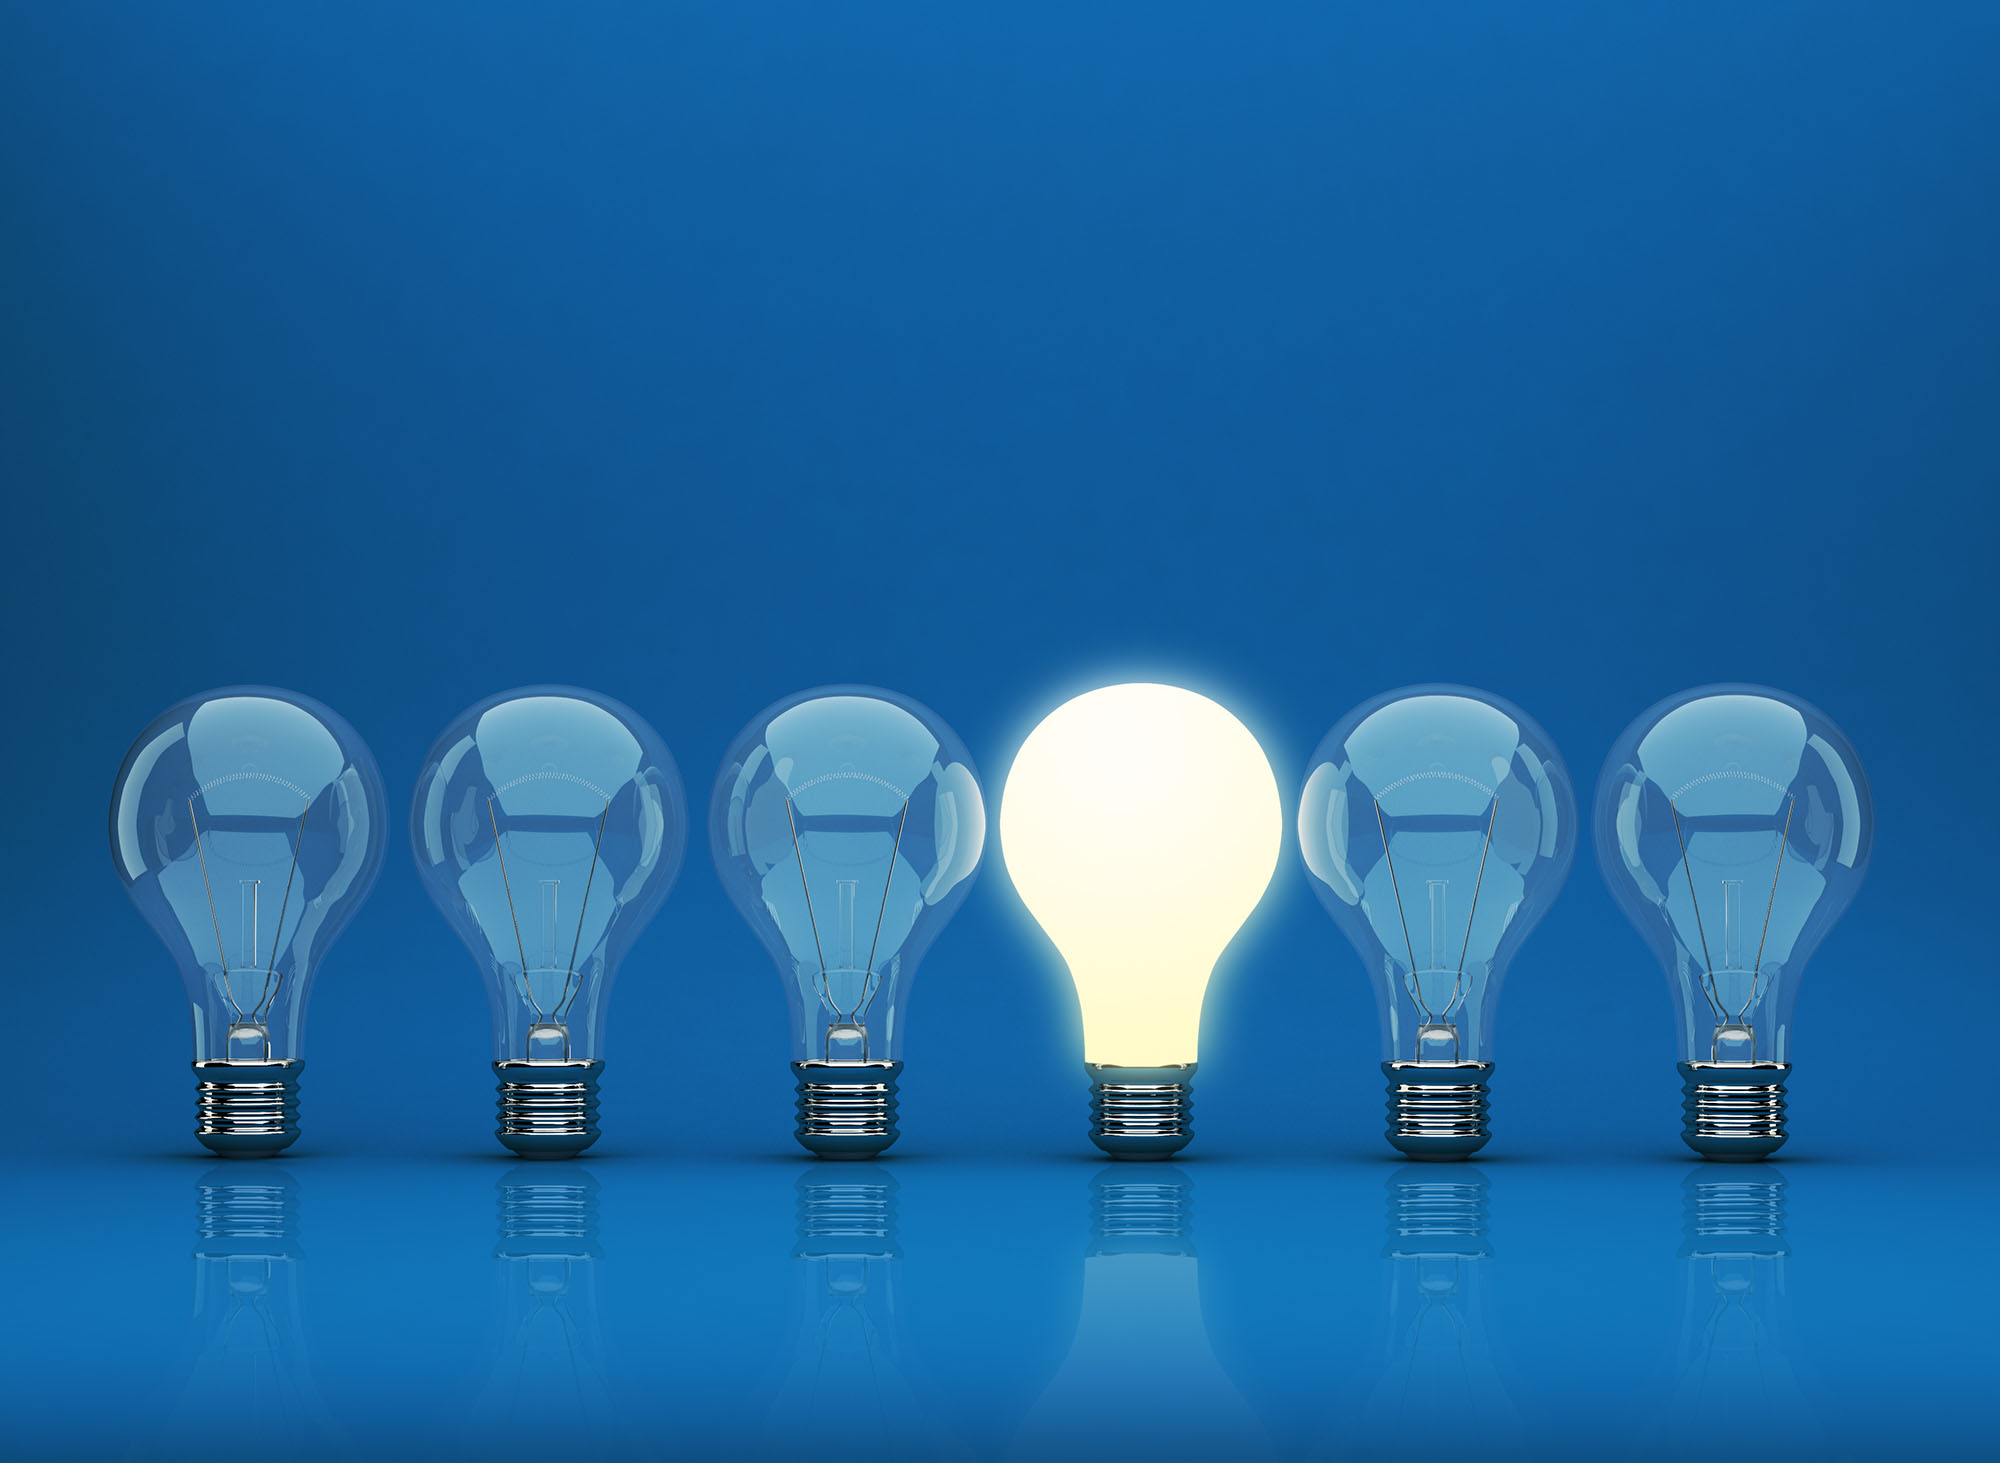 3D image of row of light bulbs on blue background. Incisive thinking & impartial advice.